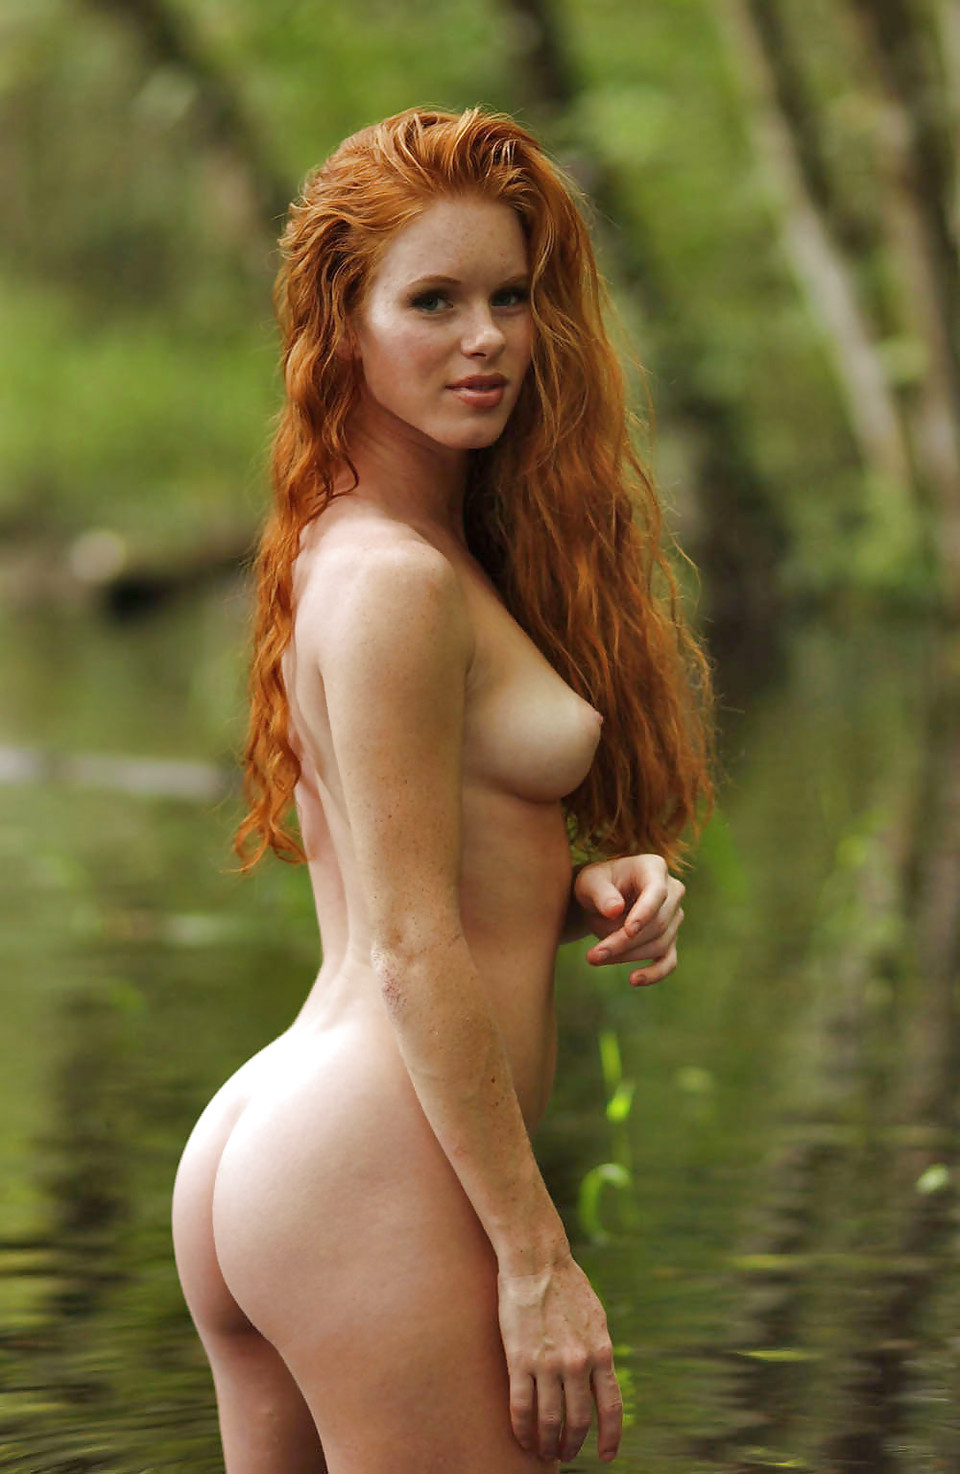 Sorry, that Natural red hair nude